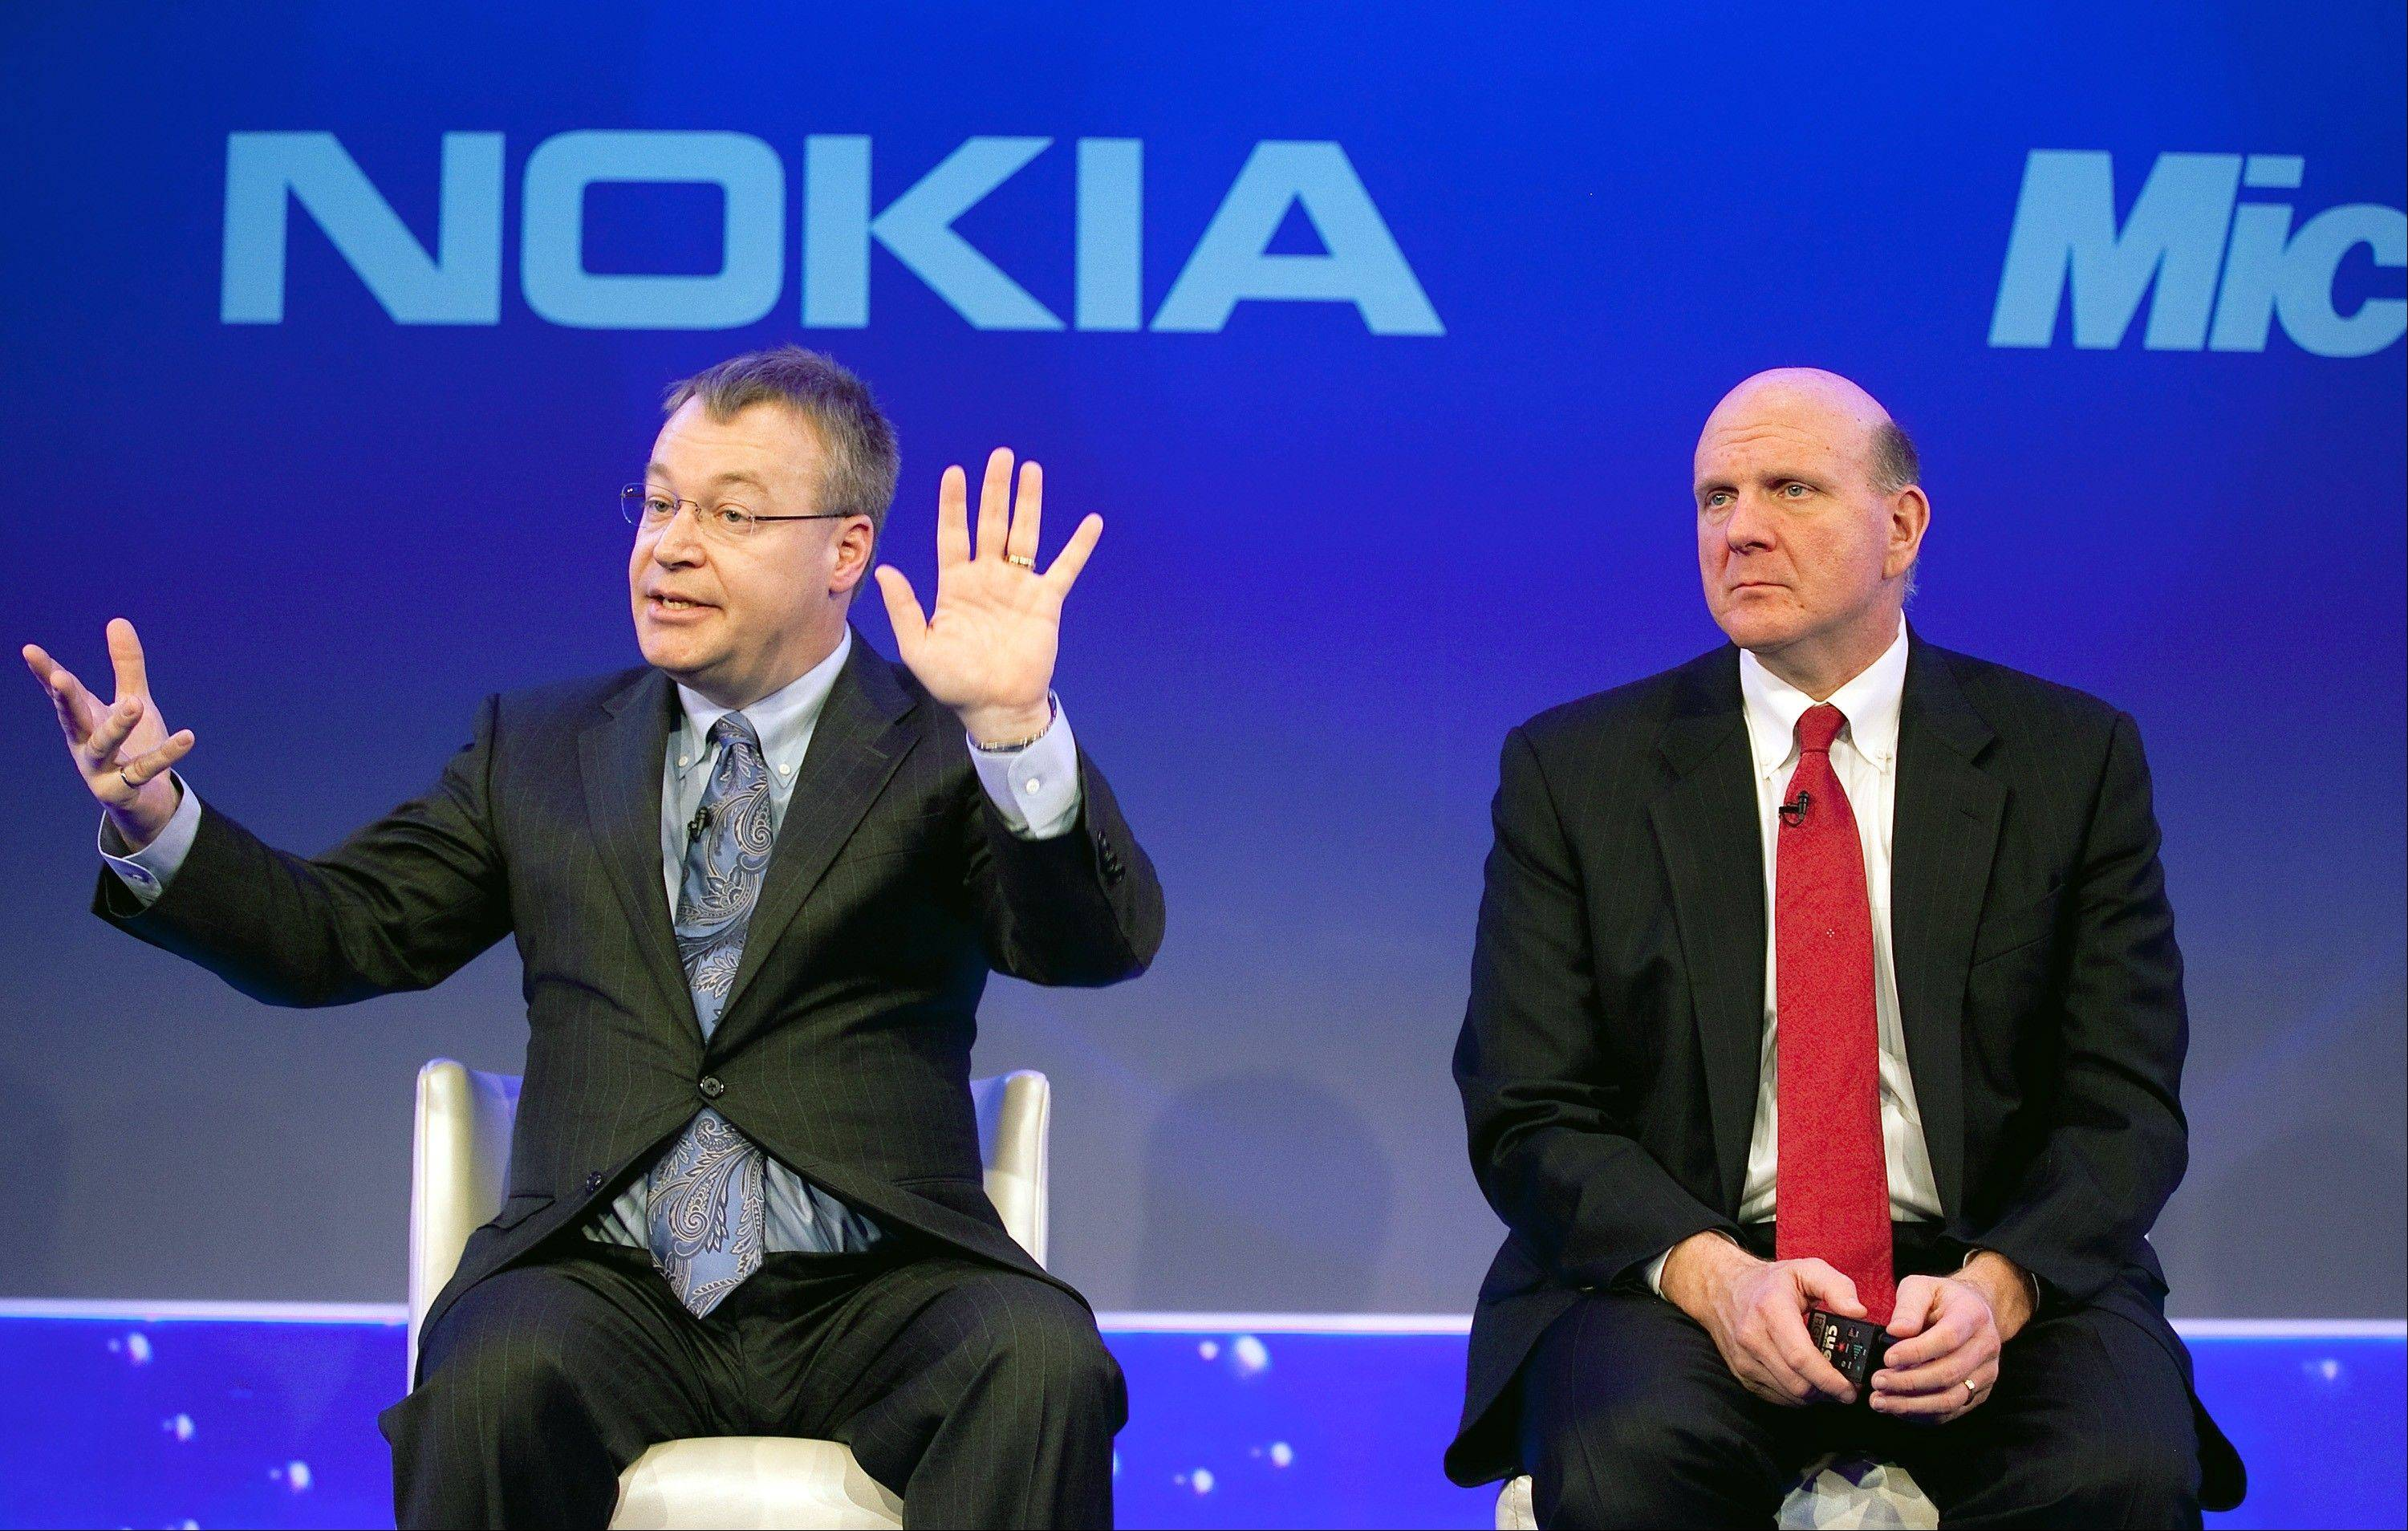 Stephen Elop, chief executive officer of Nokia Oyj, left, speaks as Steve Ballmer, chief executive officer of Microsoft Corp., listens while onstage at the Nokia capital markets day in London, U.K., on Friday, Feb. 11, 2011. Microsoft Corp. agreed to buy Nokia Oyj�s handset business and license its patents for $7.2 billion, casting together the lot of two companies trying to stay relevant against fleet-footed technology rivals.